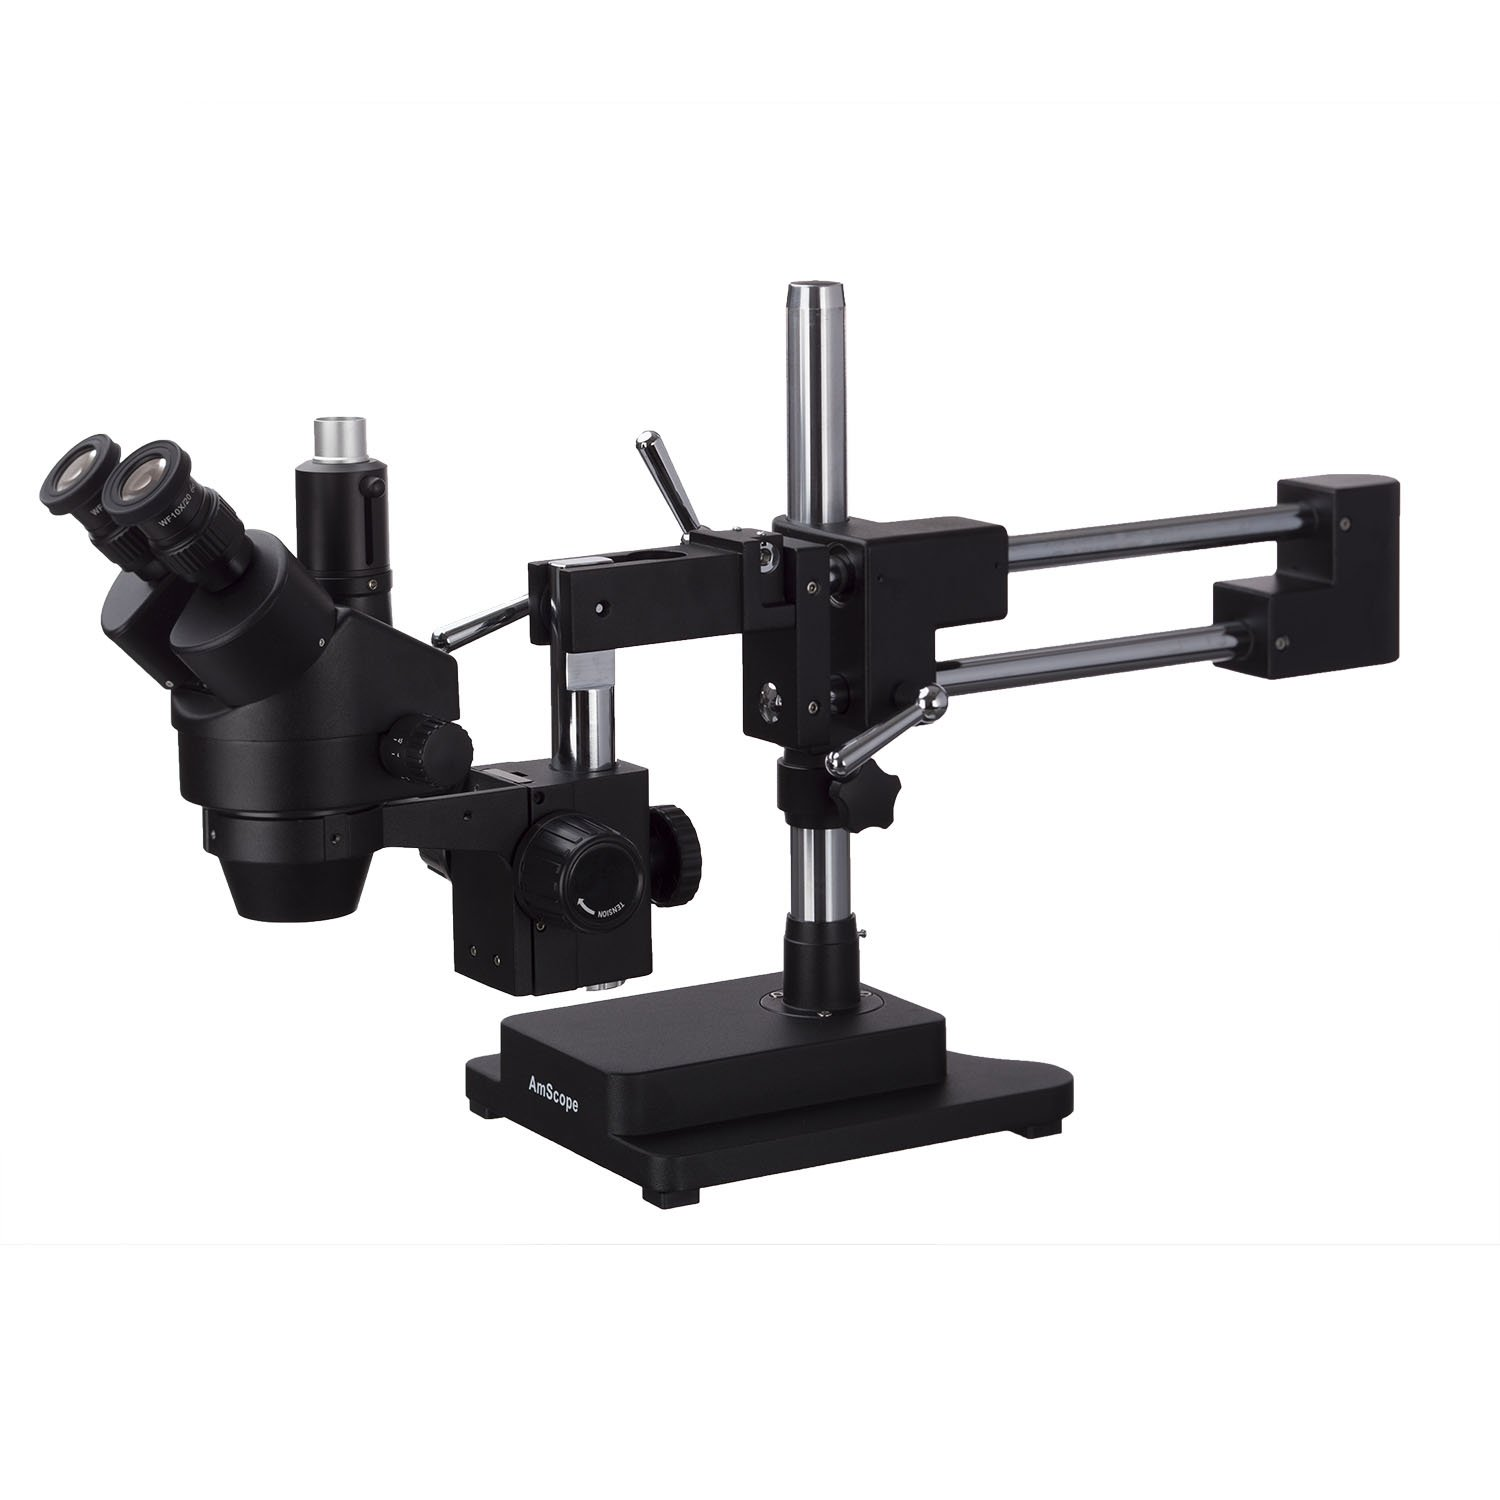 Image of AmScope 3.5X-180X Trinocular Stereo Zoom Microscope with Black Double Arm Boom Stand